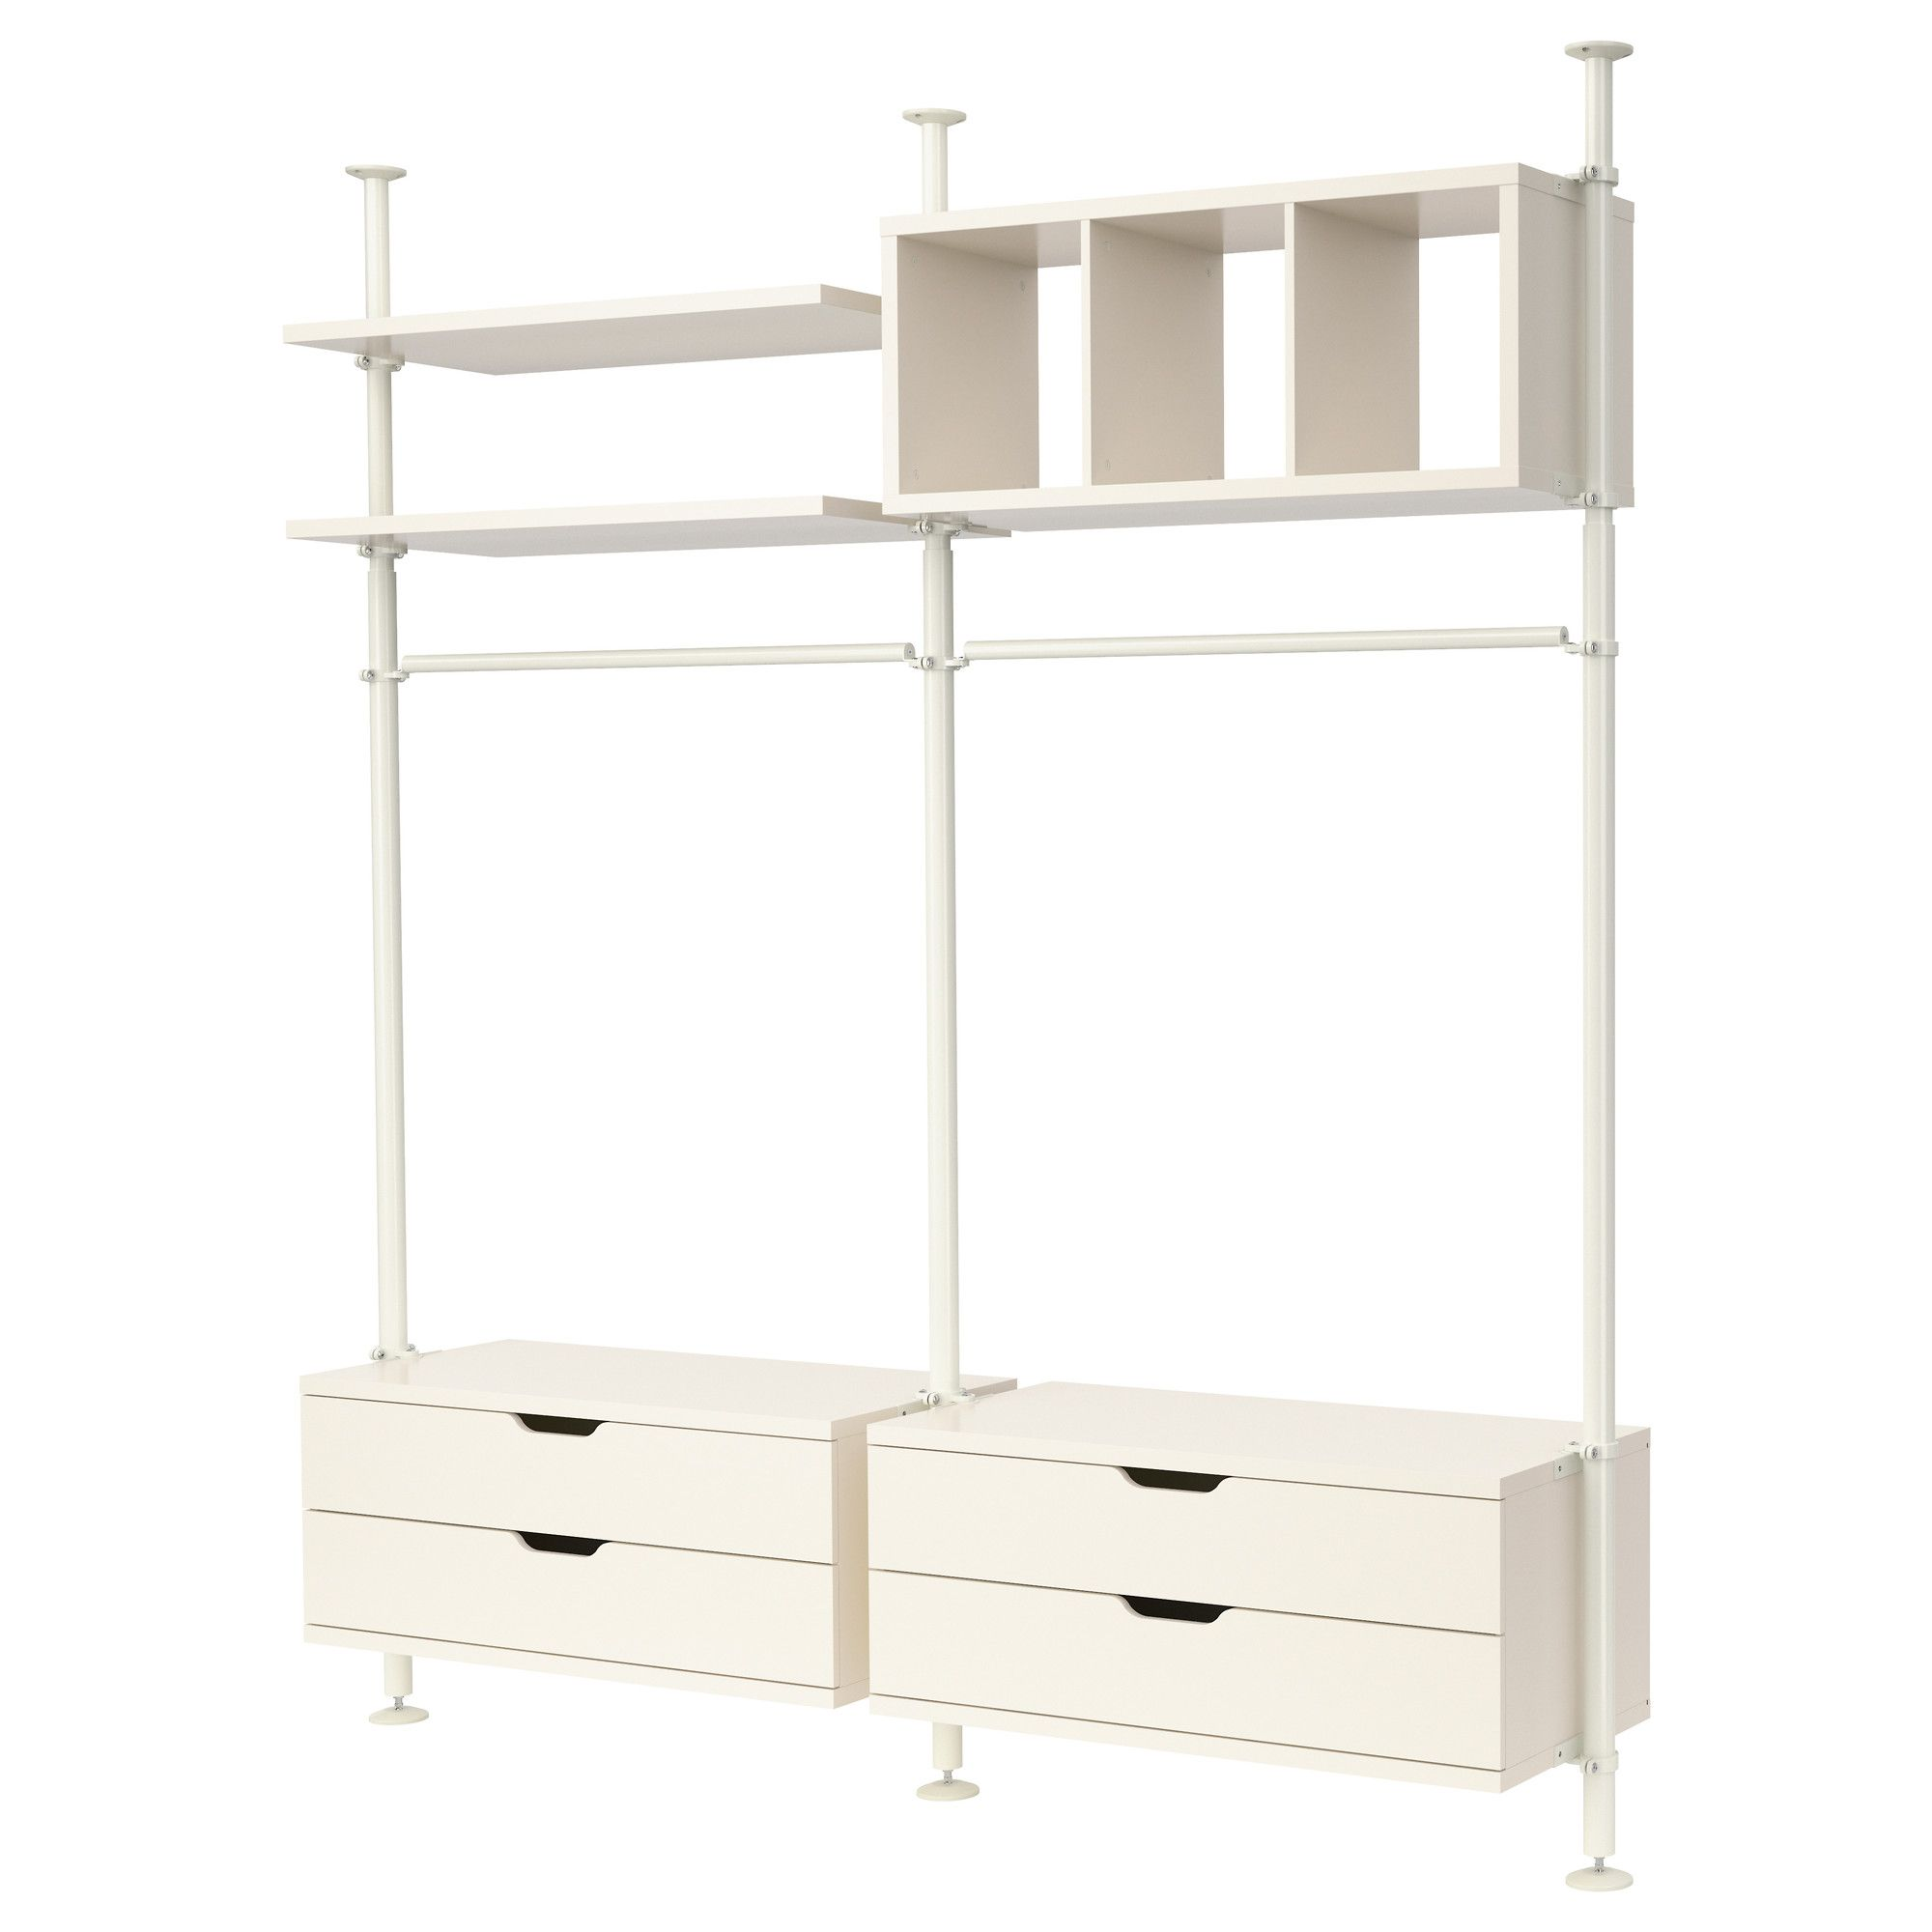 Ikea Schlafzimmer System Stolmen 2 Sections Ikea Studio Inspiration